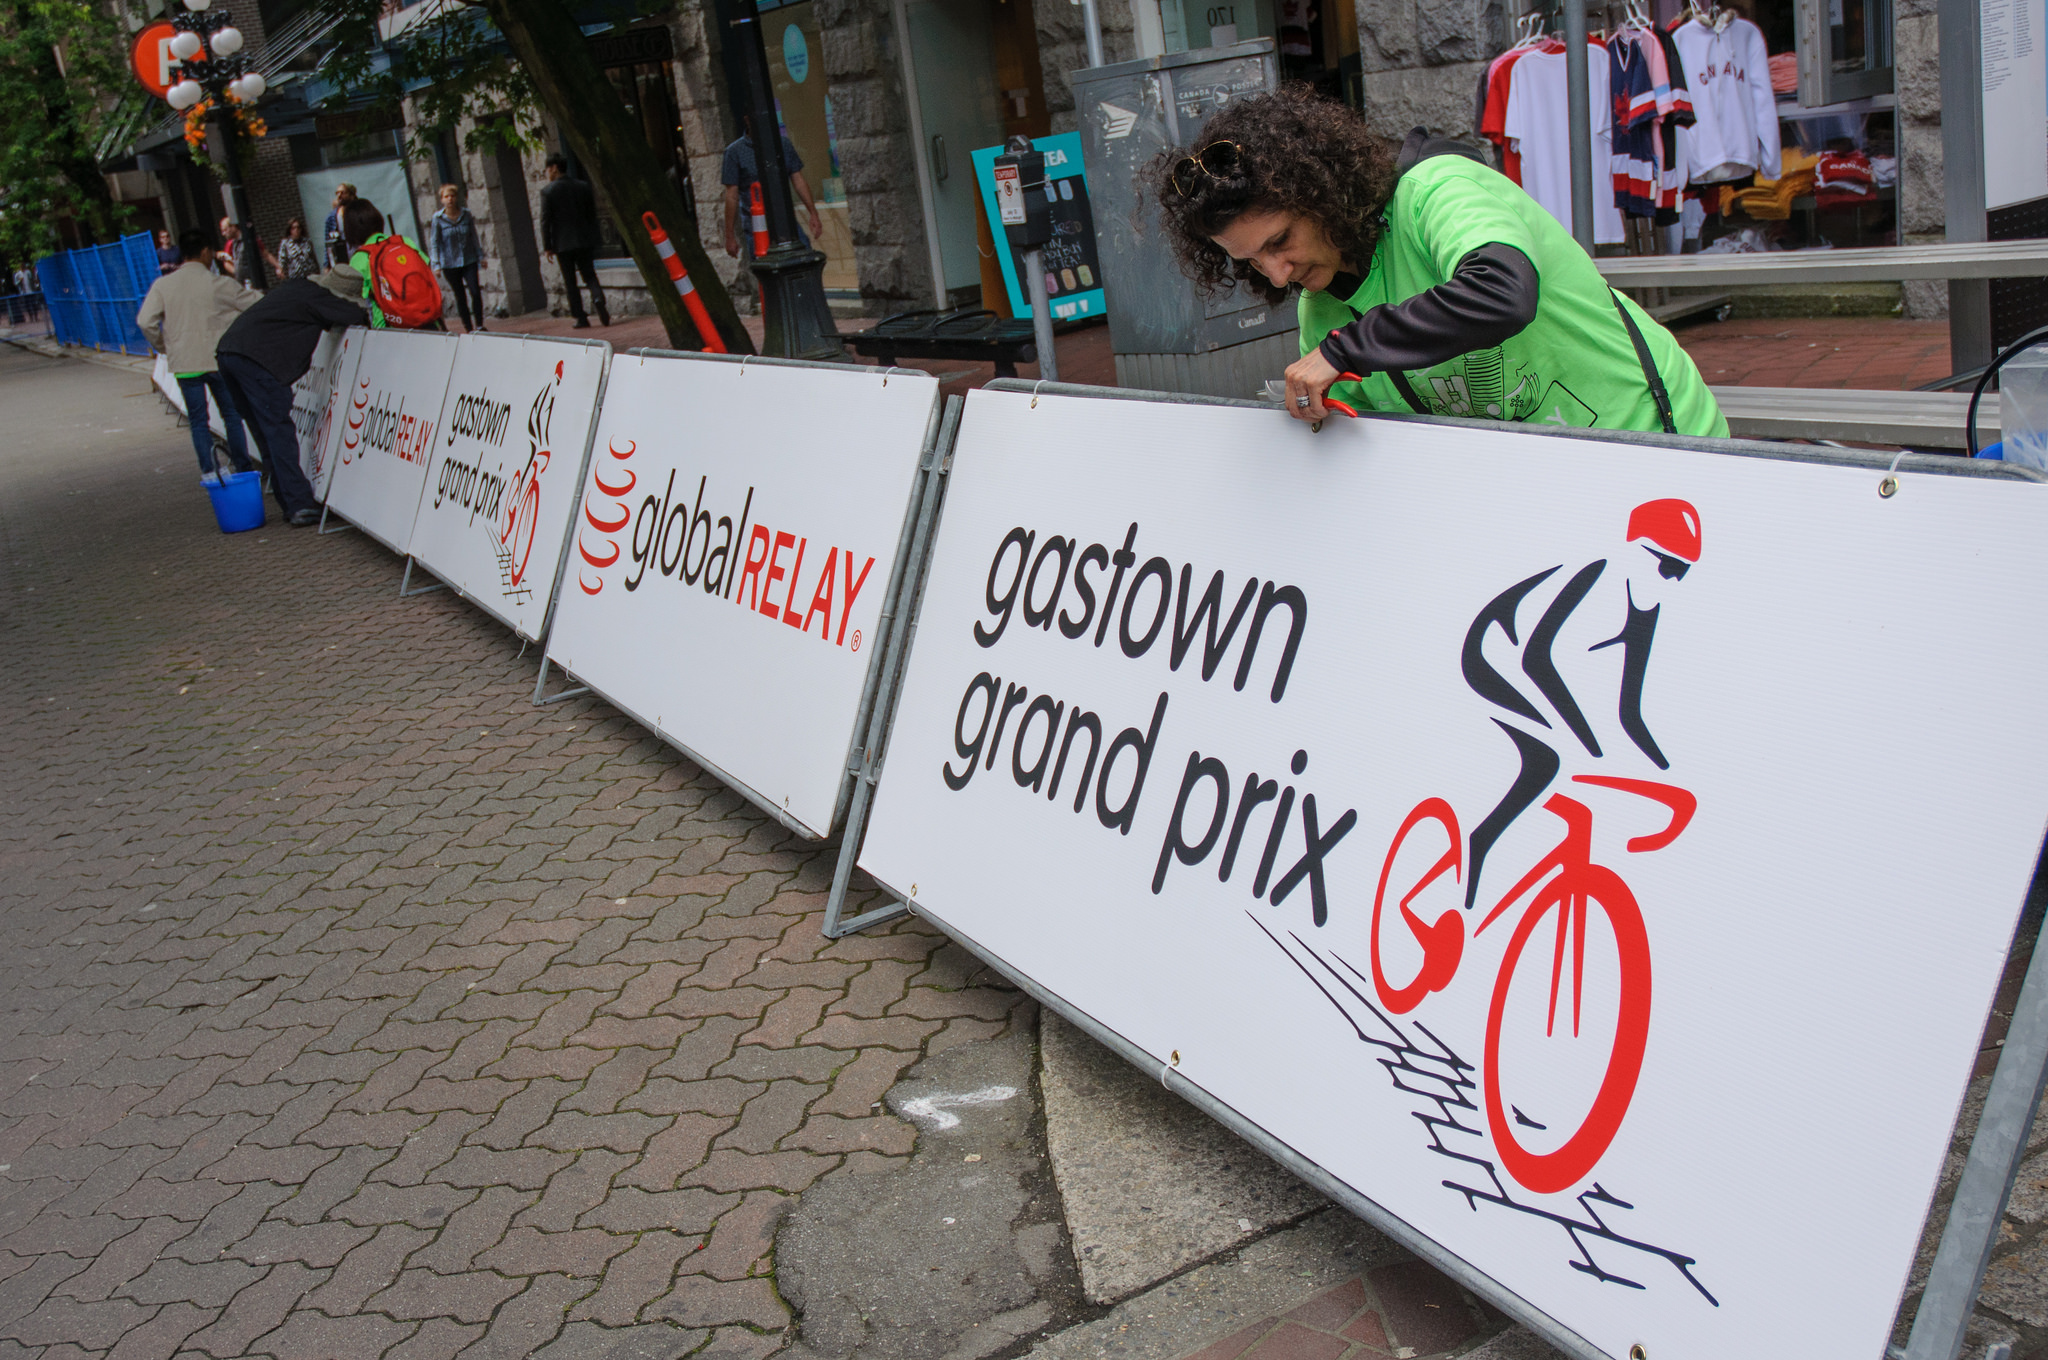 Gastown Grand Prix 2016 (11).jpg